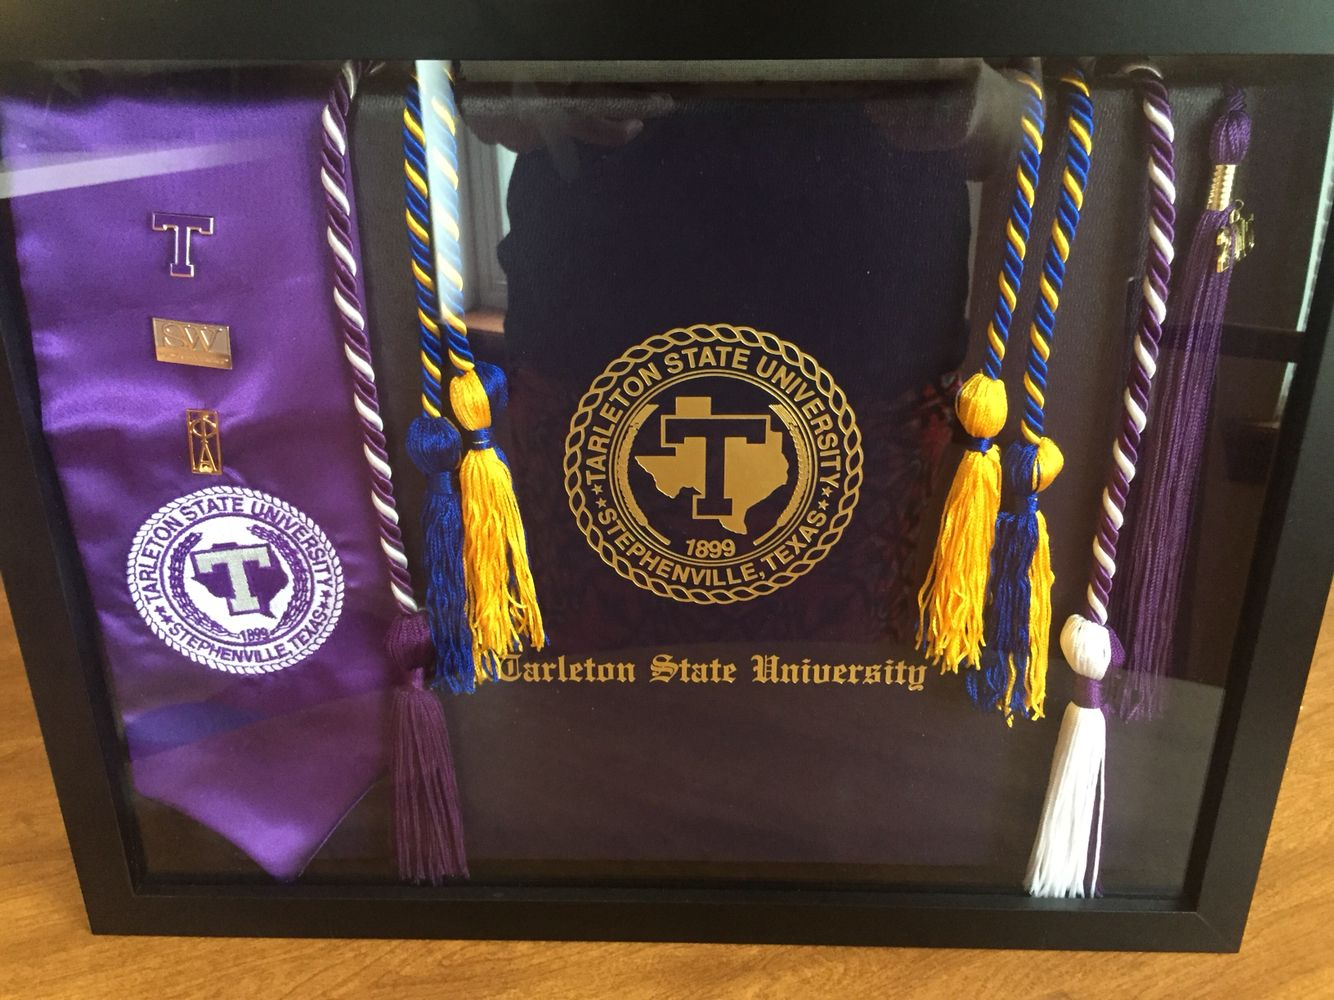 Tarleton State University Graduation Shadow Box Tarleton